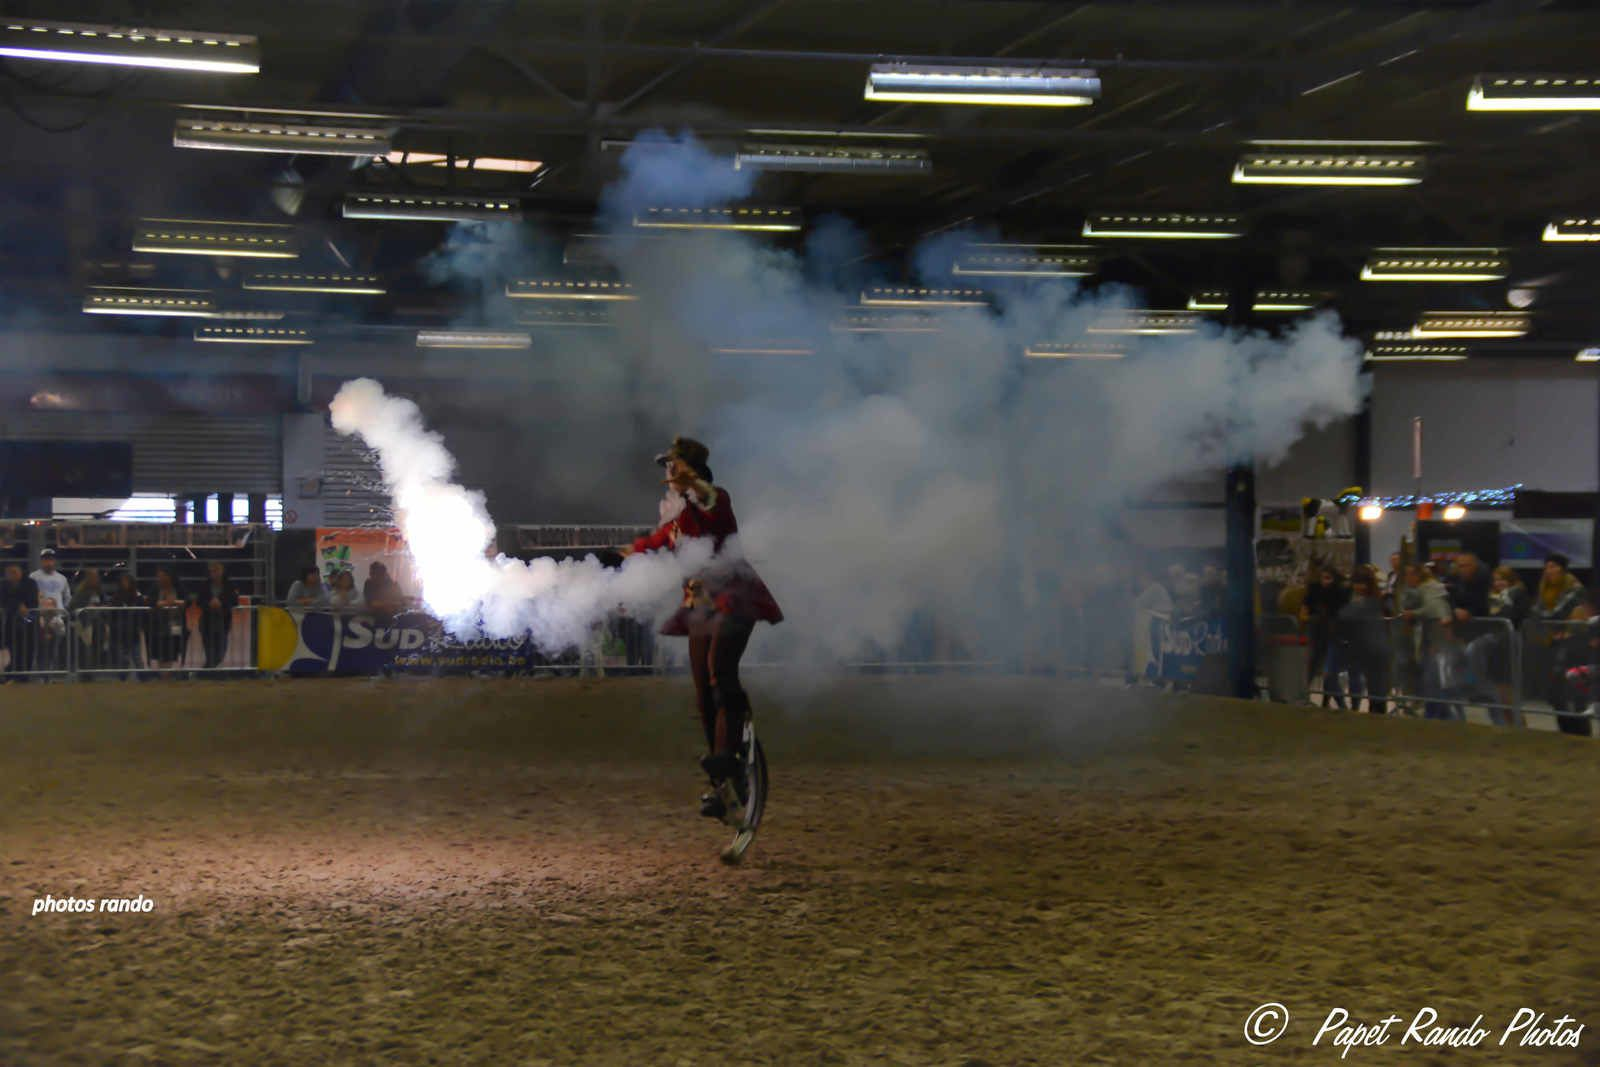 La suite du Salon du cheval Tournai 2019